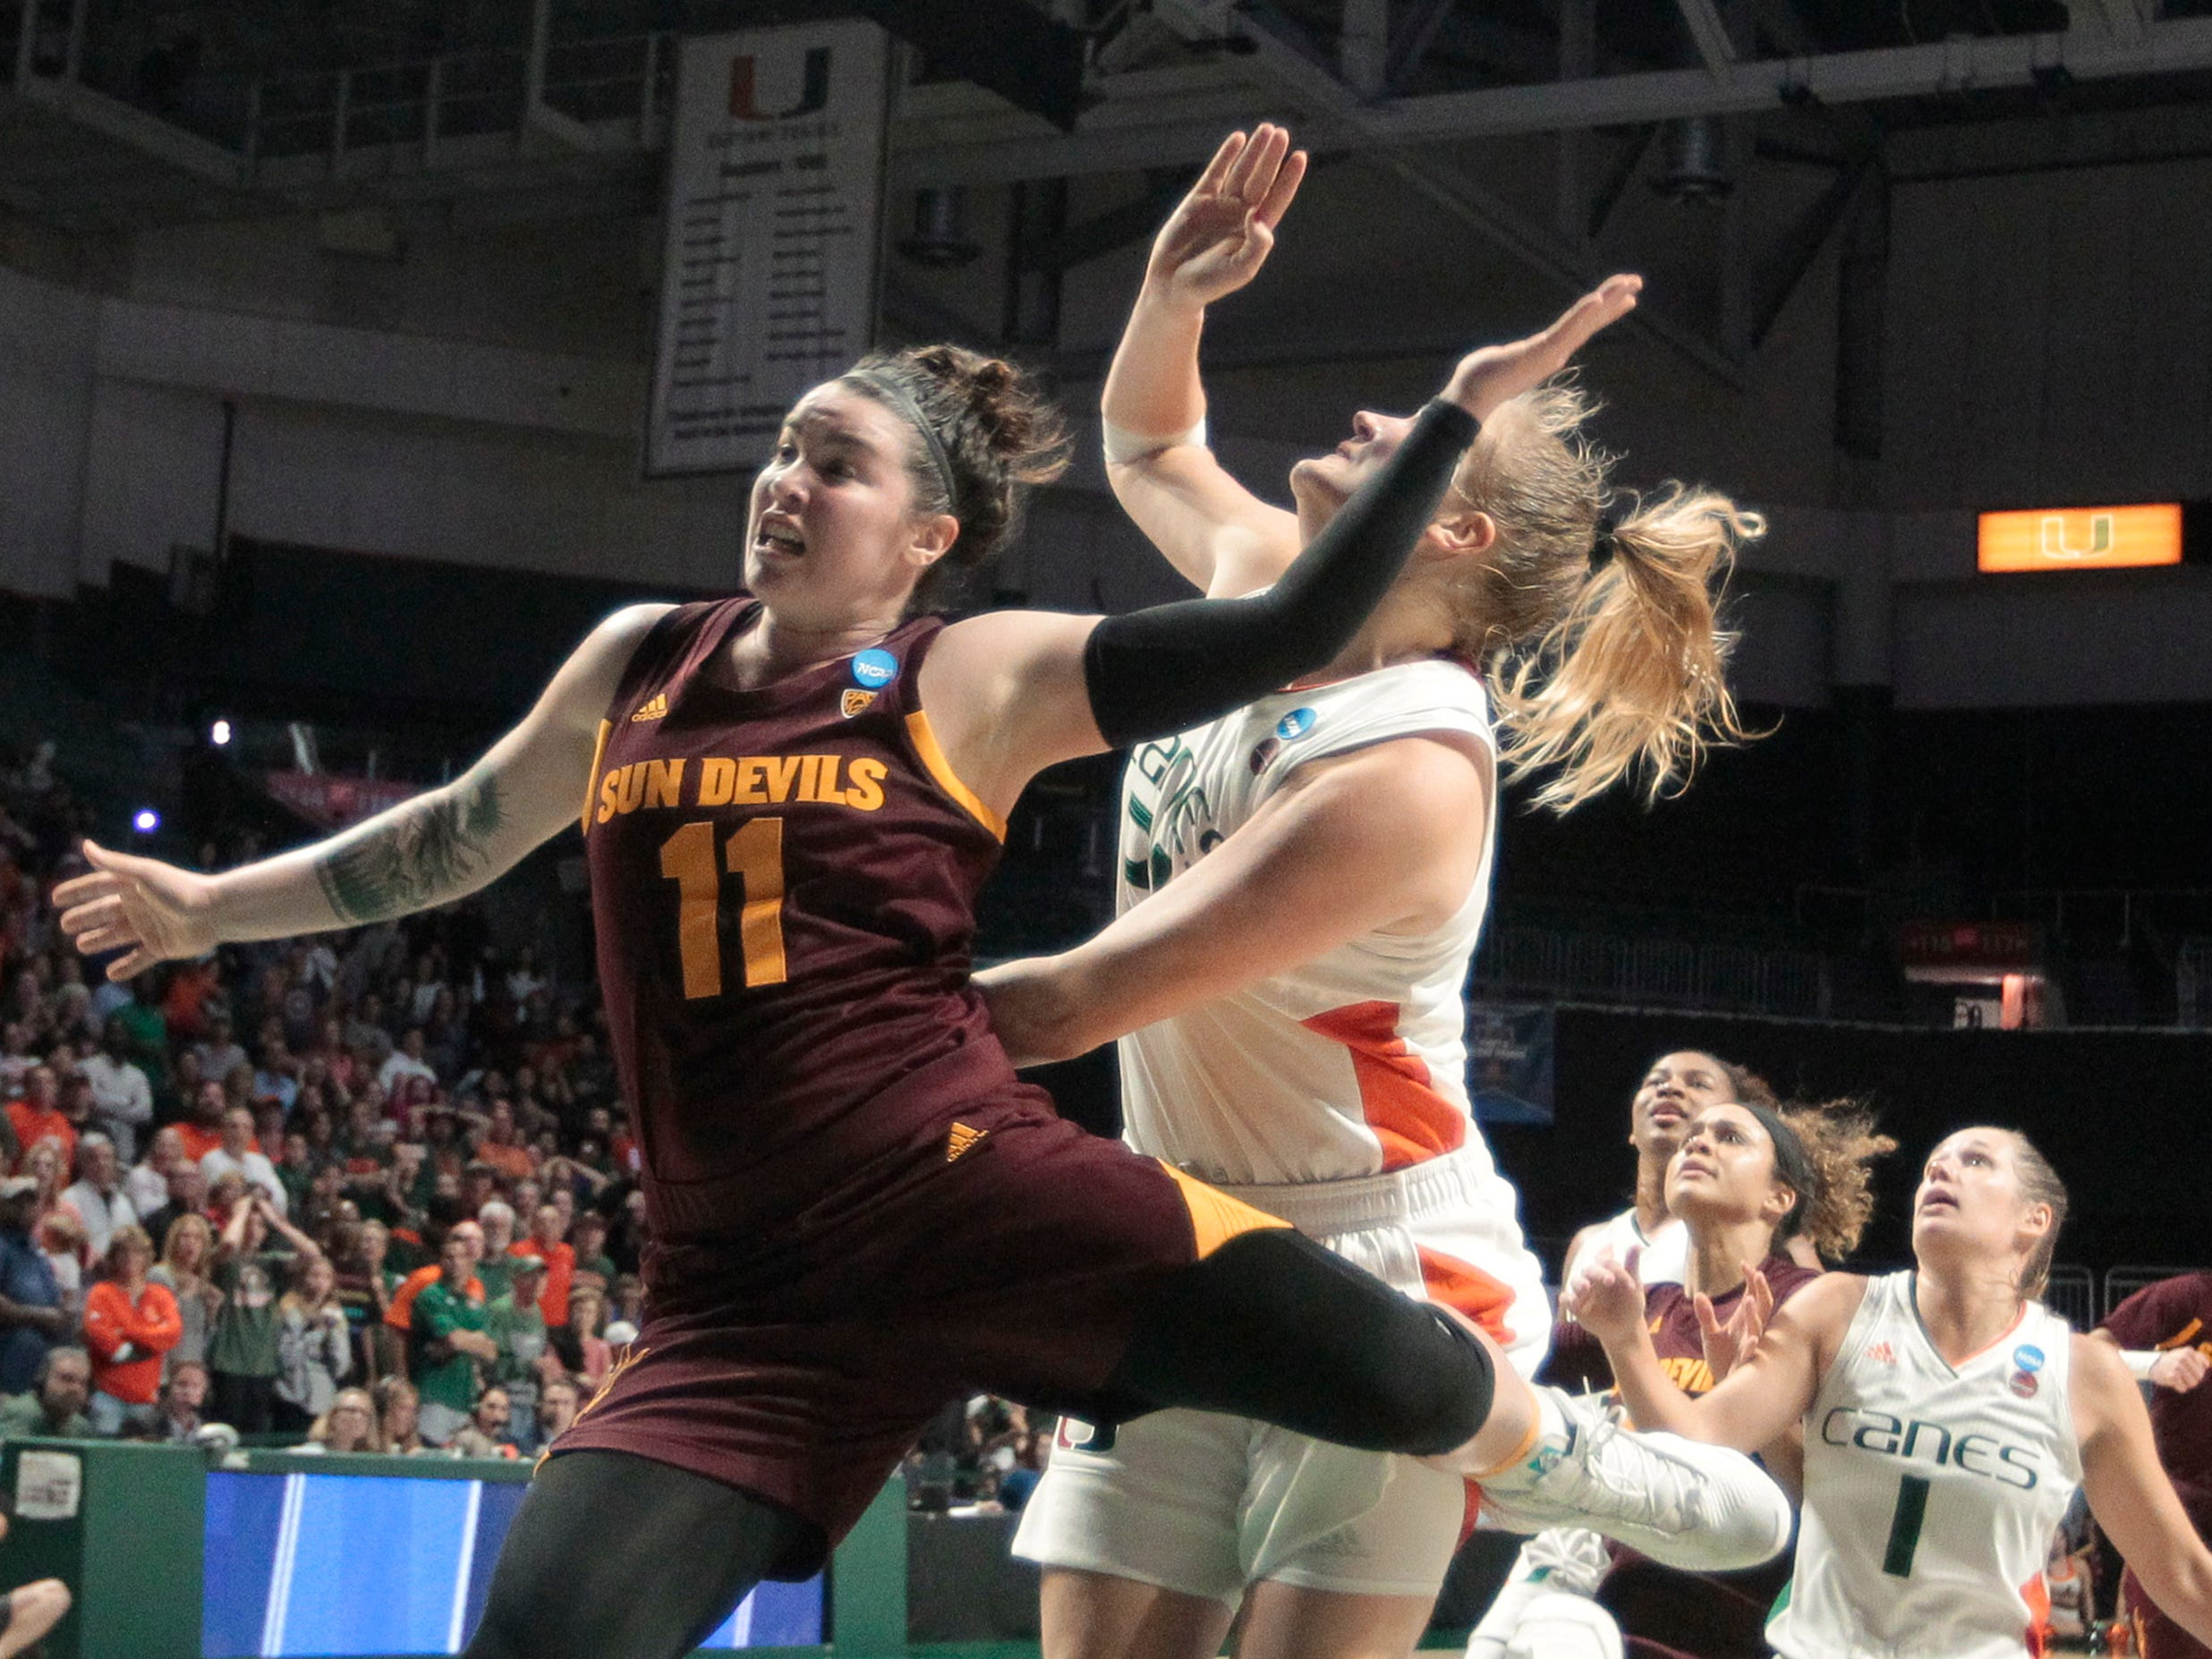 Arizona State's Robbi Ryan (11) is fouled by Miami's Emese Hof, right, as she attempts the go-ahead shot during the closing seconds of a second-round women's college basketball game in the NCAA Tournament, Sunday, March 24, 2019, in Coral Gables, Fla. Arizona State won 57-55. (AP Photo/Luis M. Alvarez)